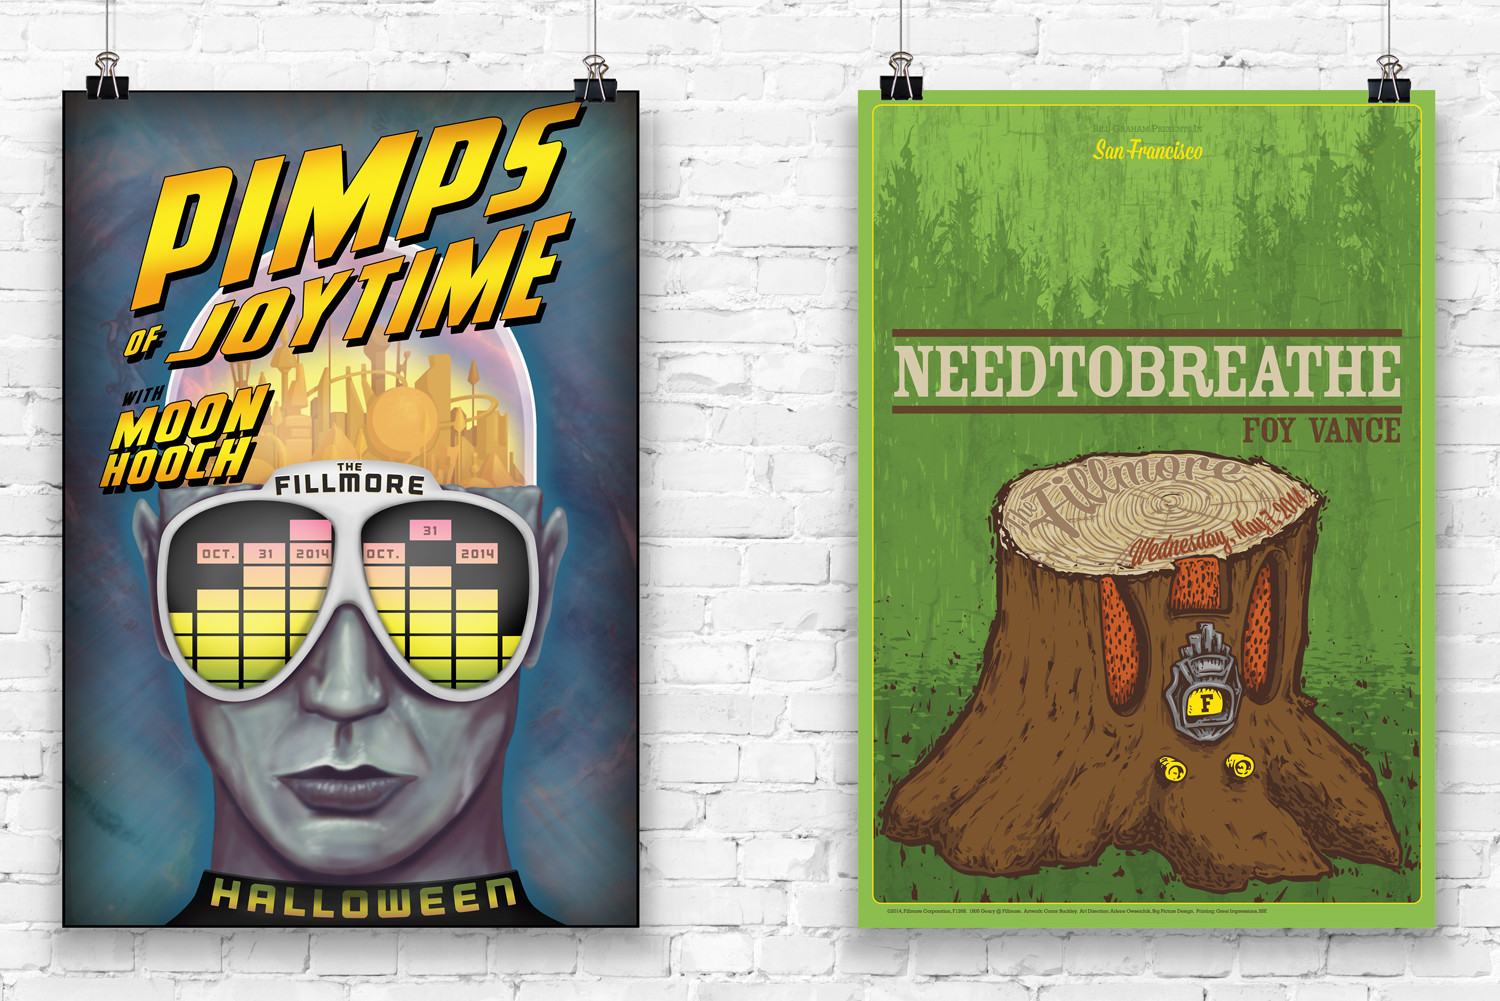 The FIllmore - San Francisco - Posters